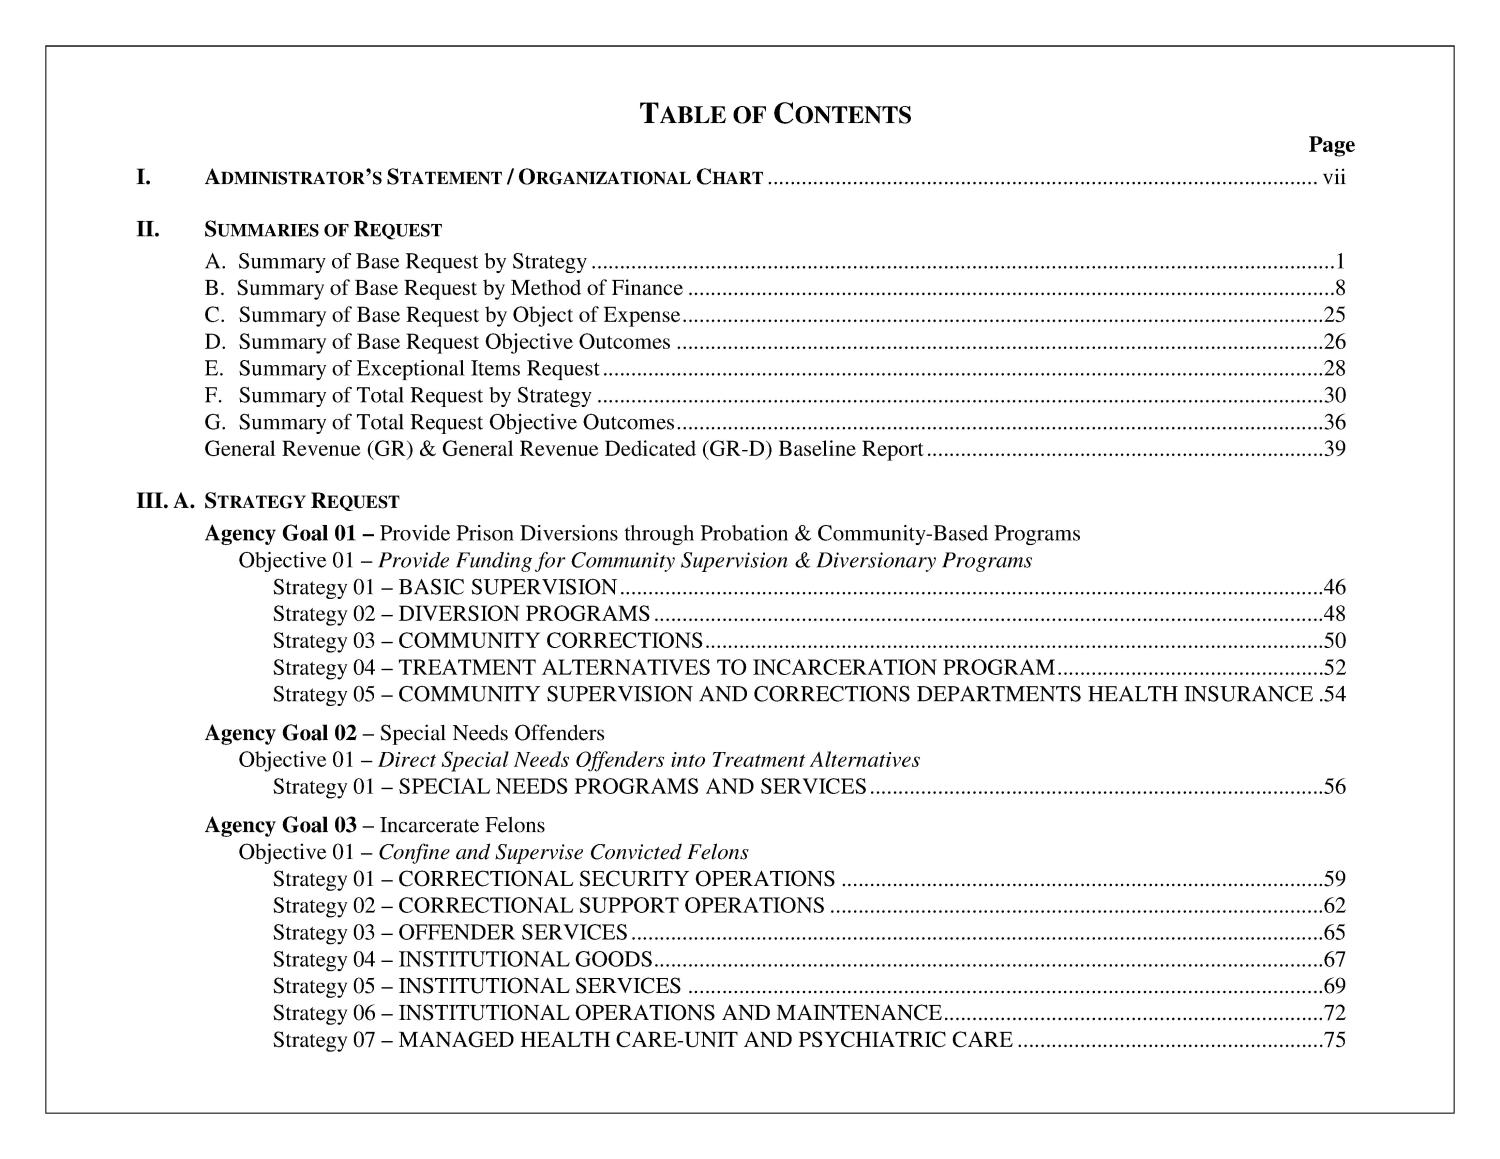 Legislative Appropriations Request for Fiscal Years 2014 and 2015                                                                                                      I